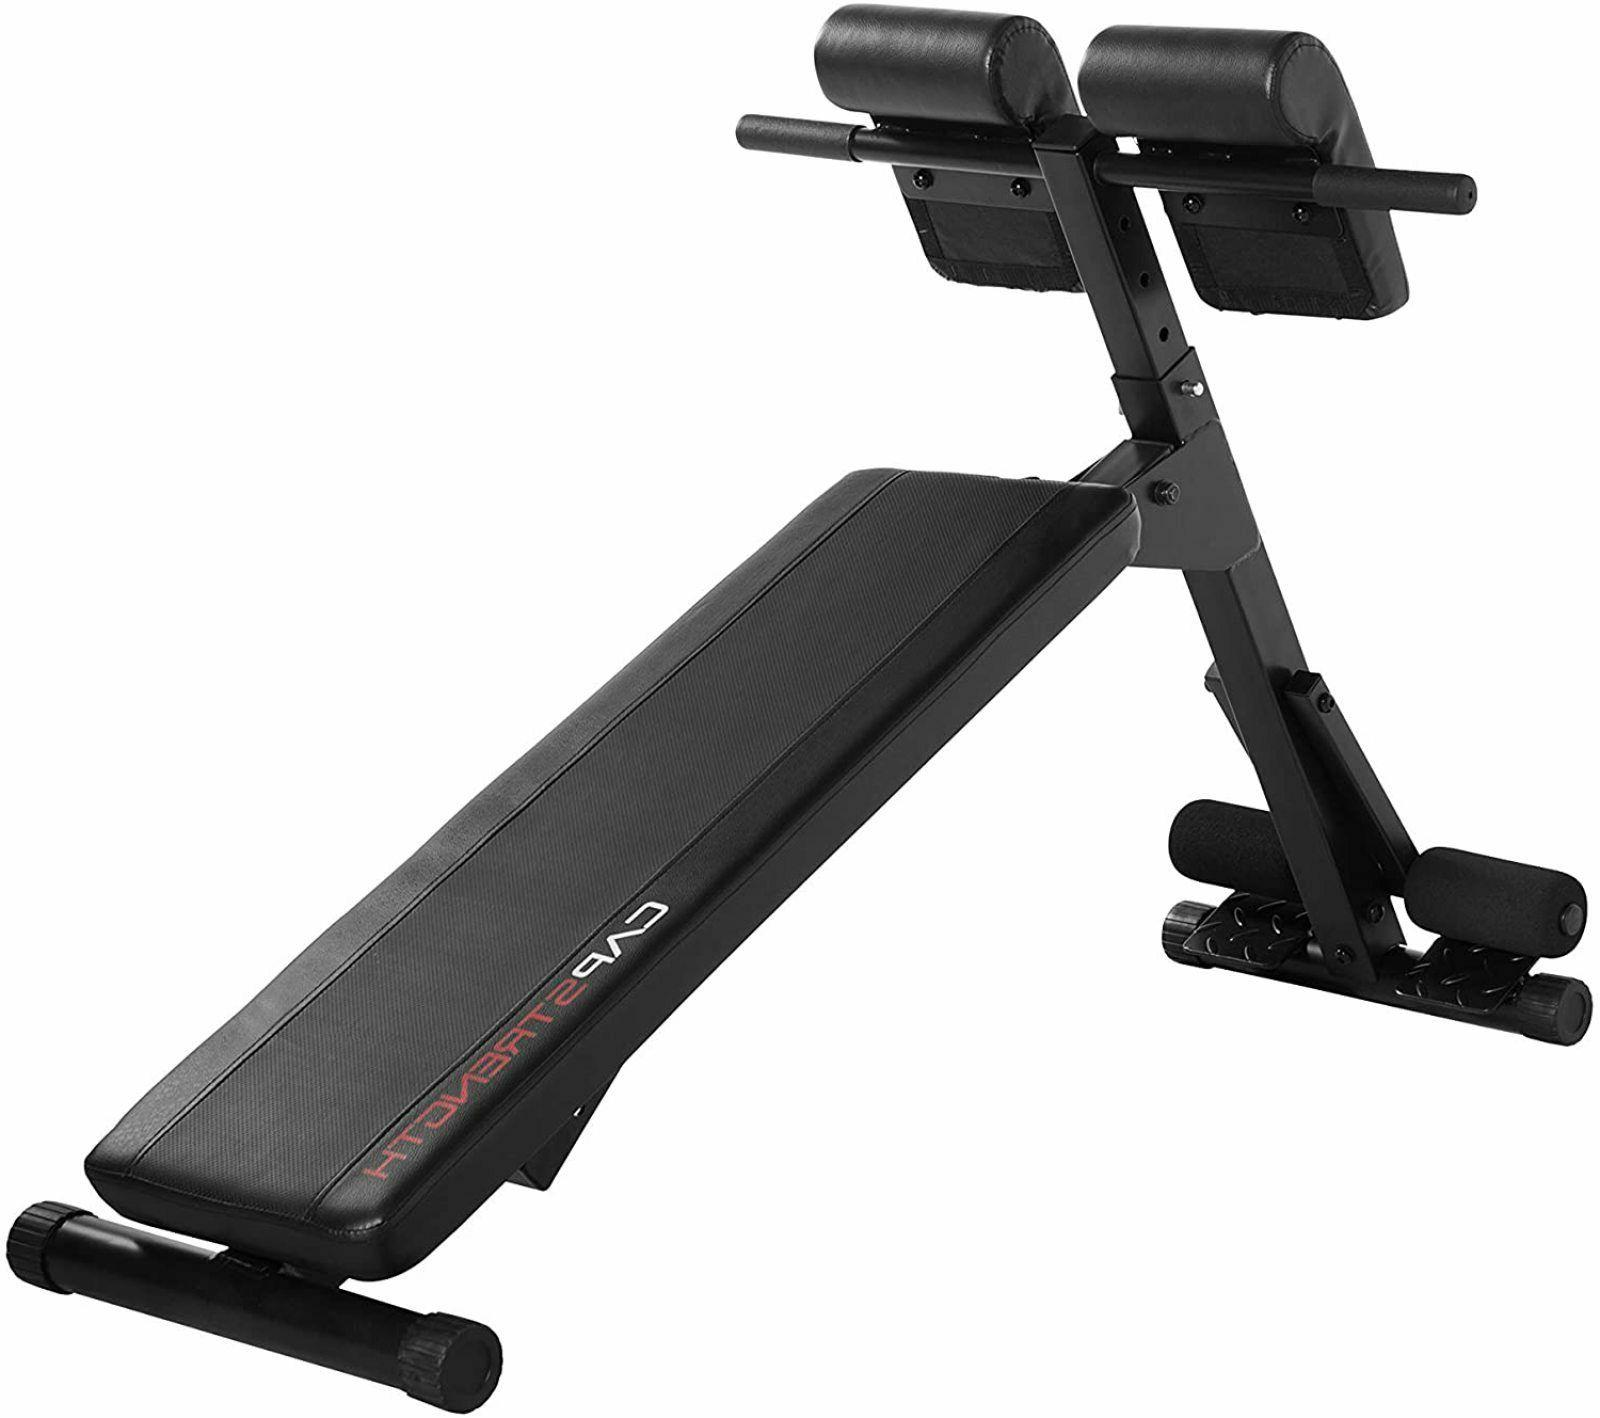 Fitness Adjustable Weight Bench Workout Exercise Home Traini